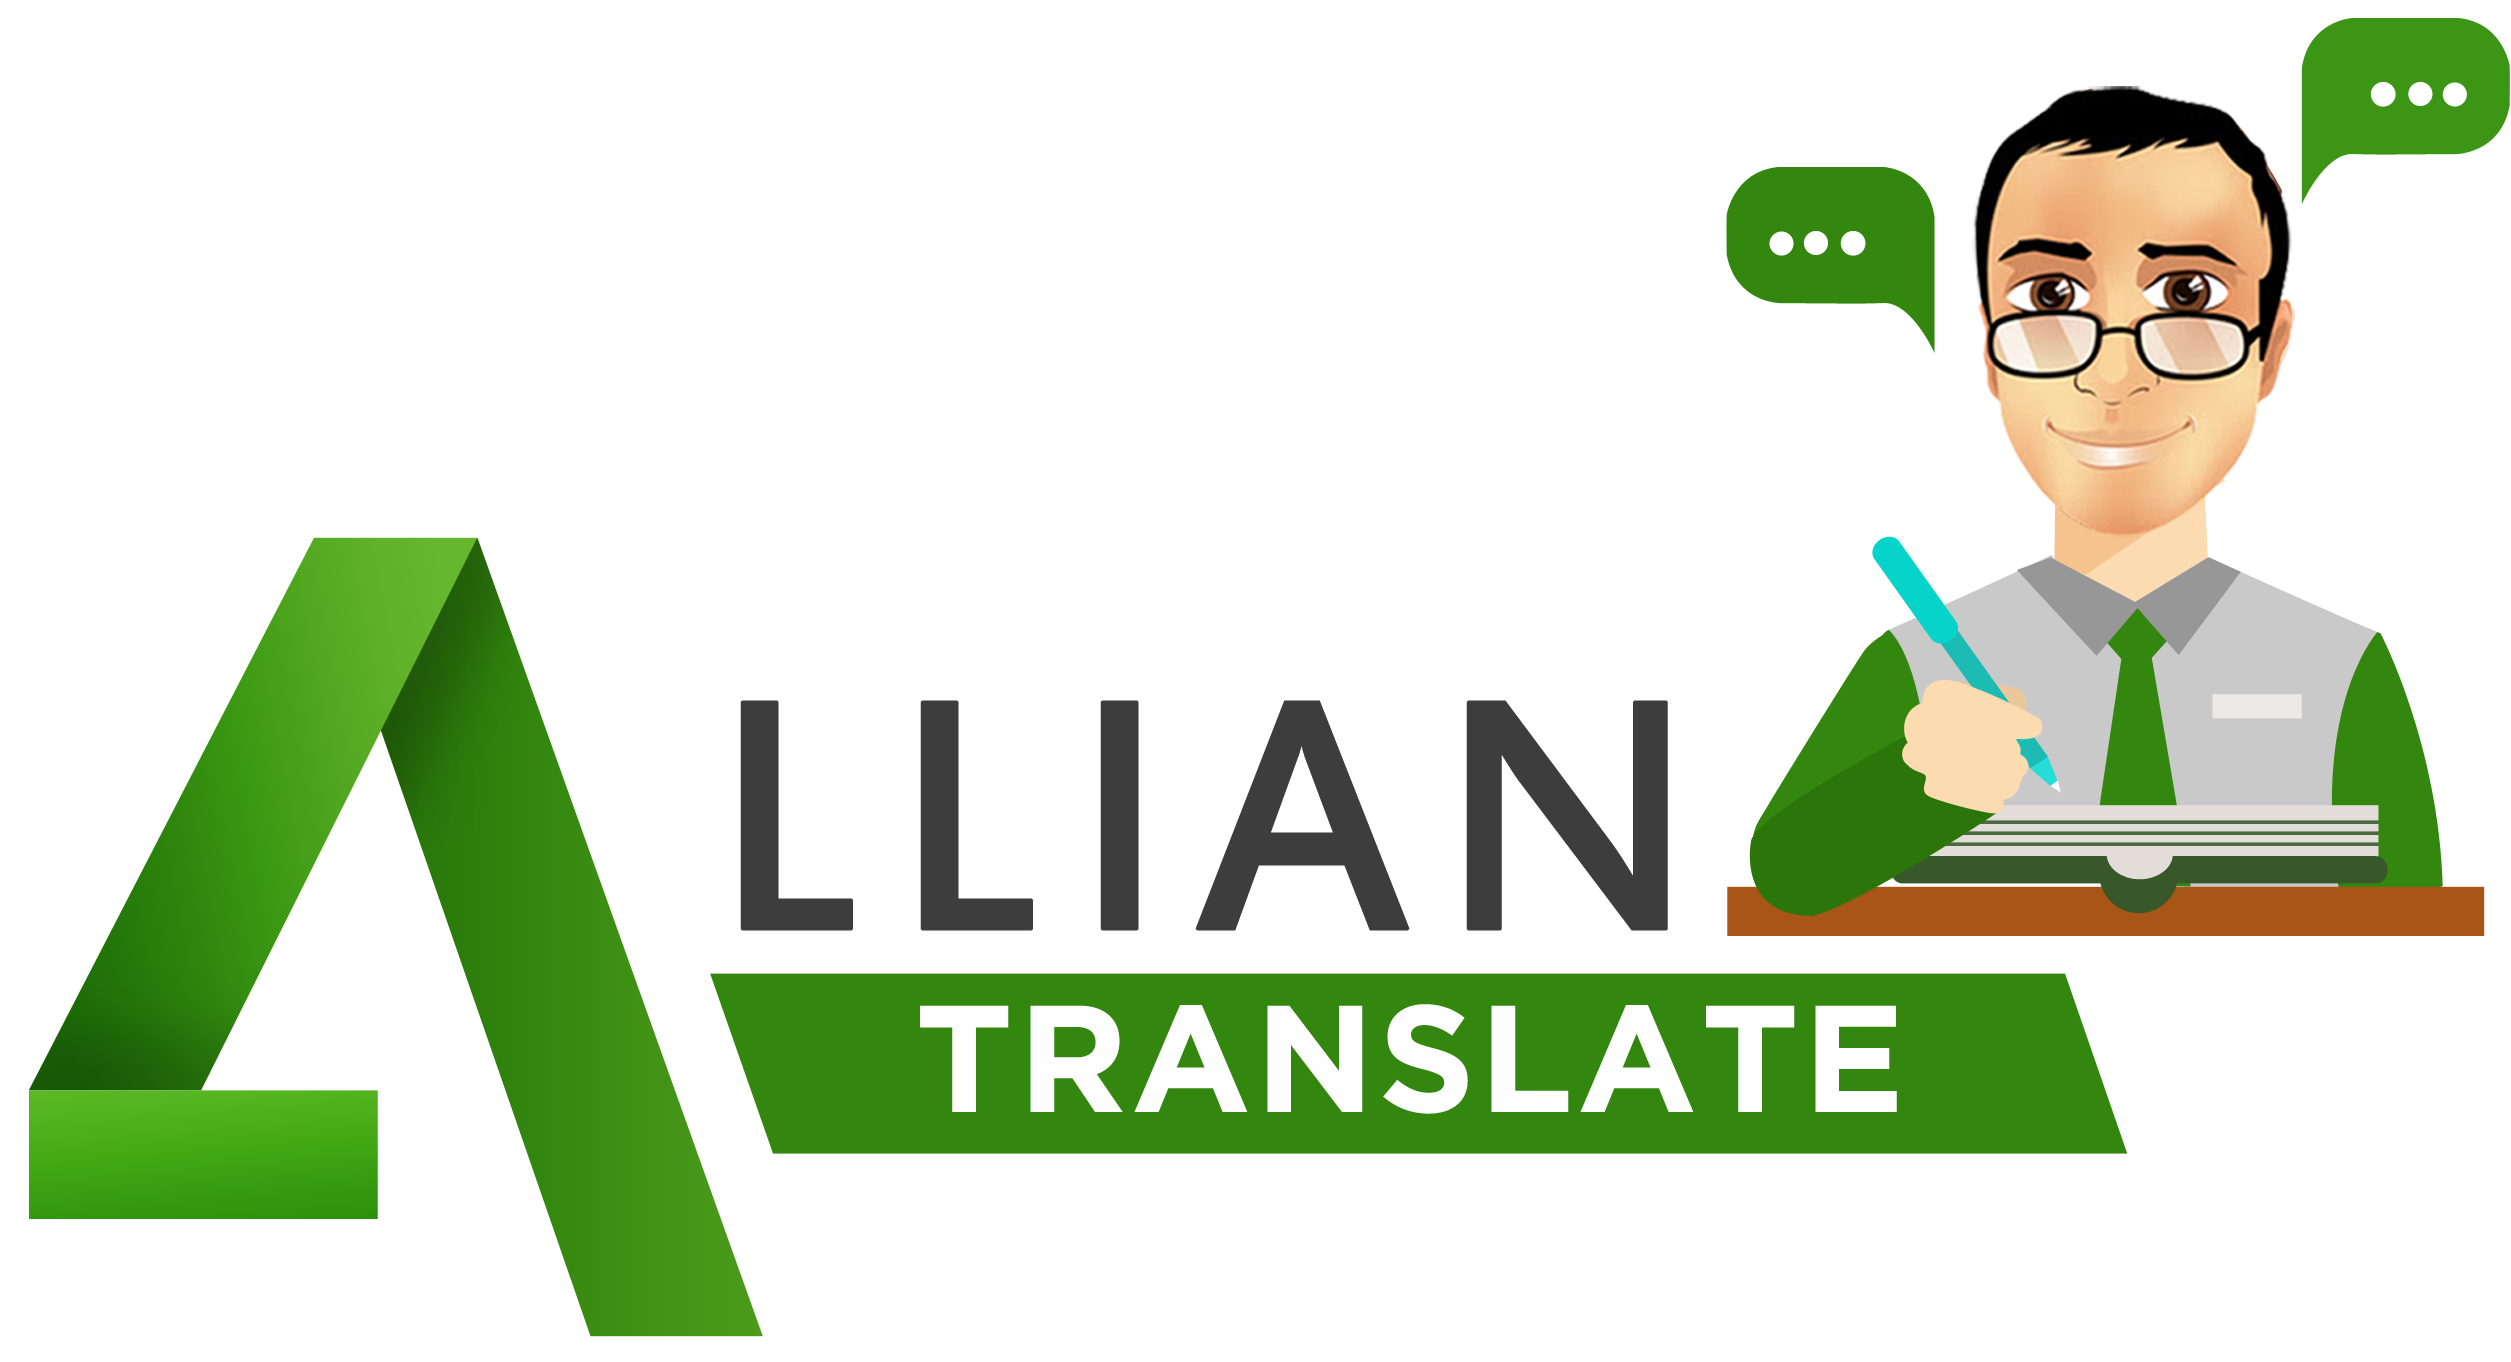 Alliance Business Solutions - Translate Certified, Notarized and Business Translation.